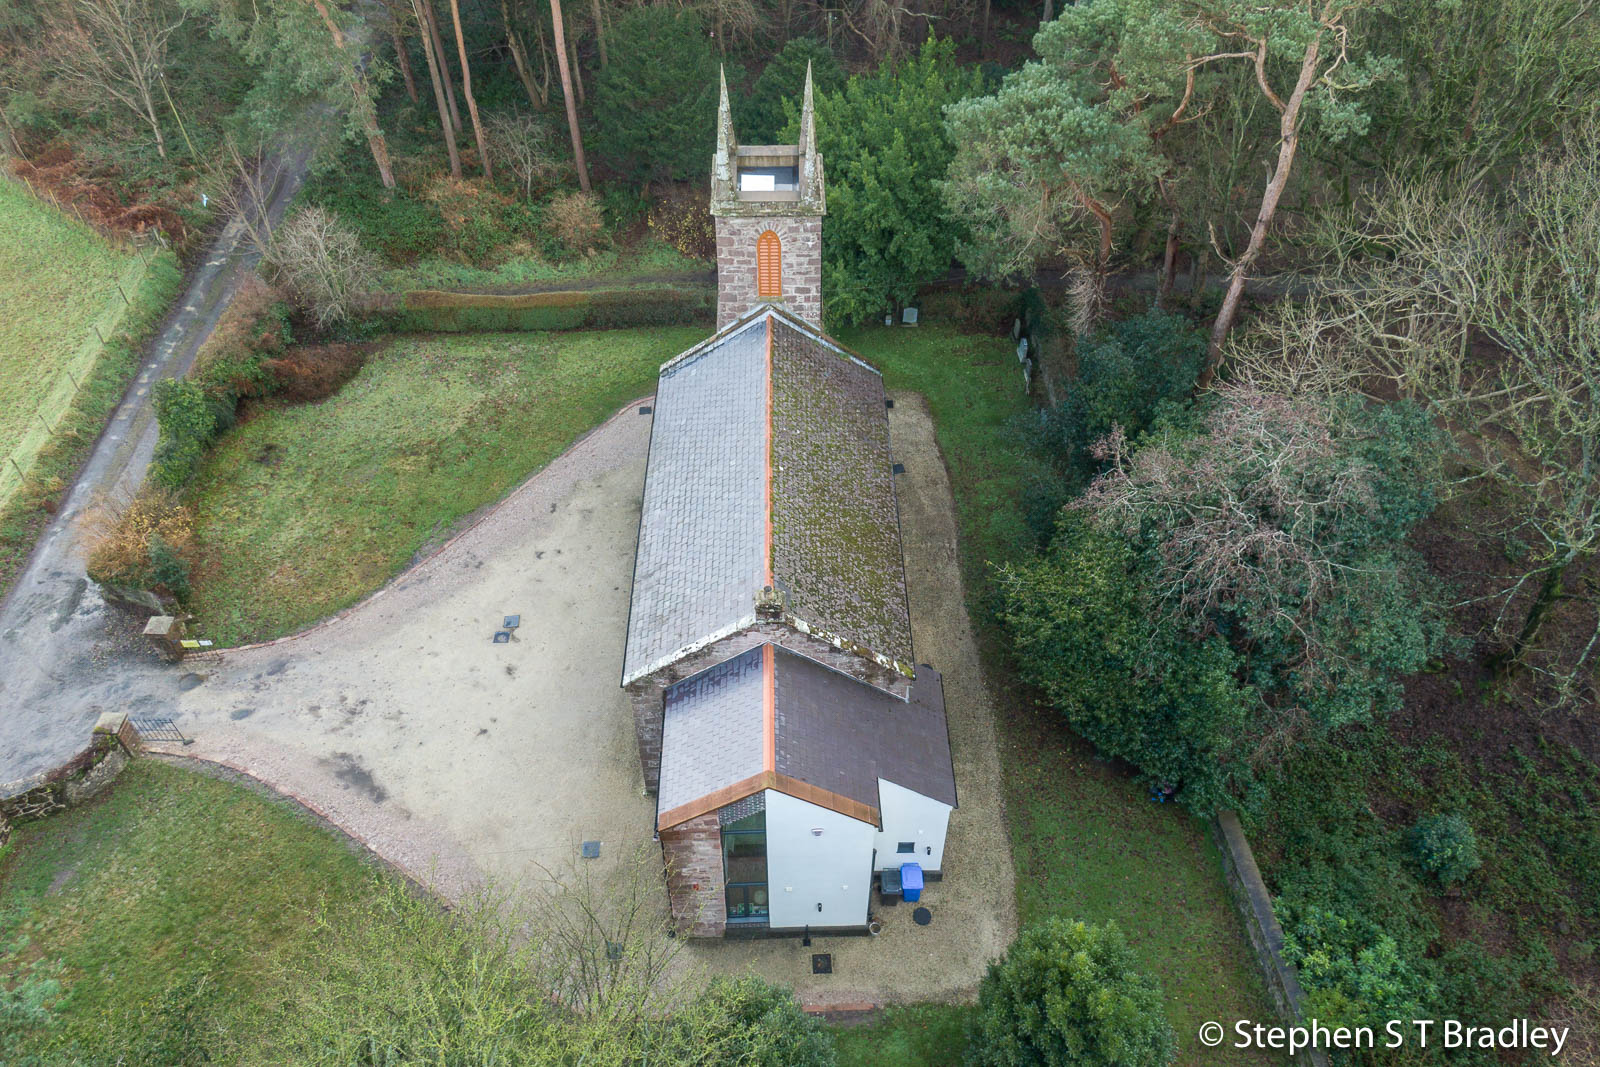 Aerial drone photography and video production services Dublin and Ireland portfolio - The Old Church Centre, Cushendun, aerial photo 0001-6